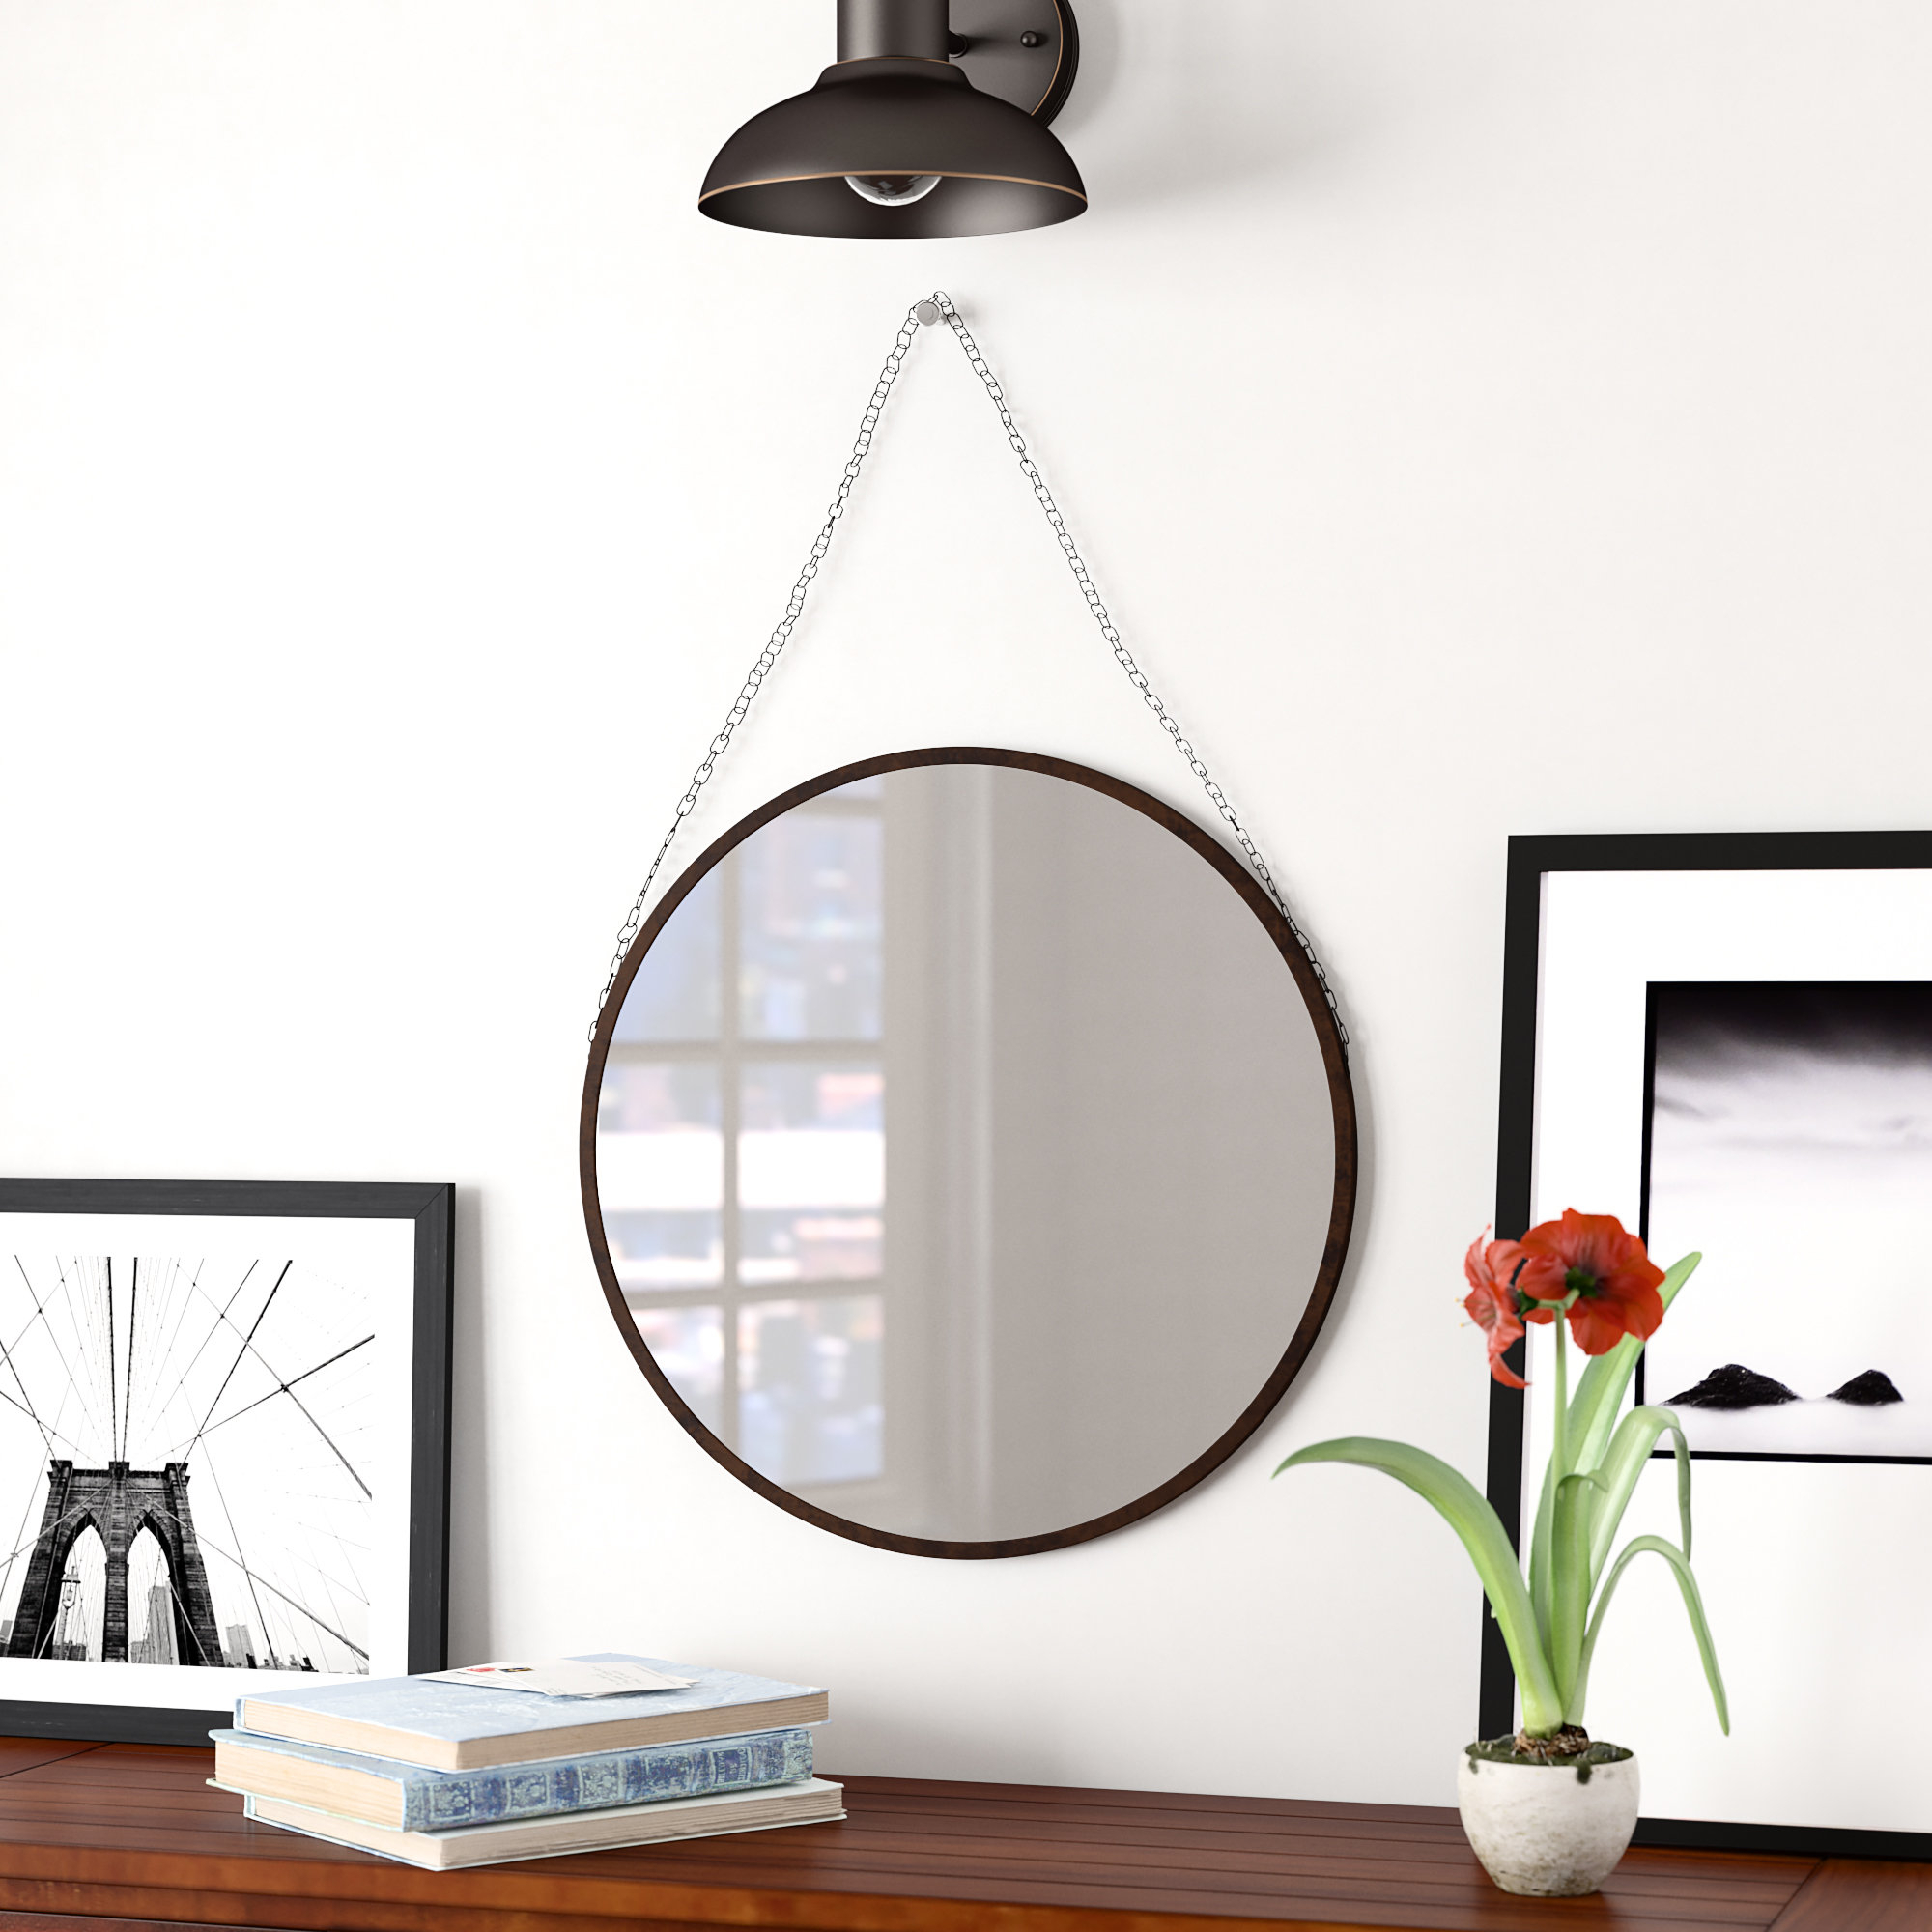 Hardison With Chain Hanger Accent Mirror With Regard To Rhein Accent Mirrors (View 14 of 20)